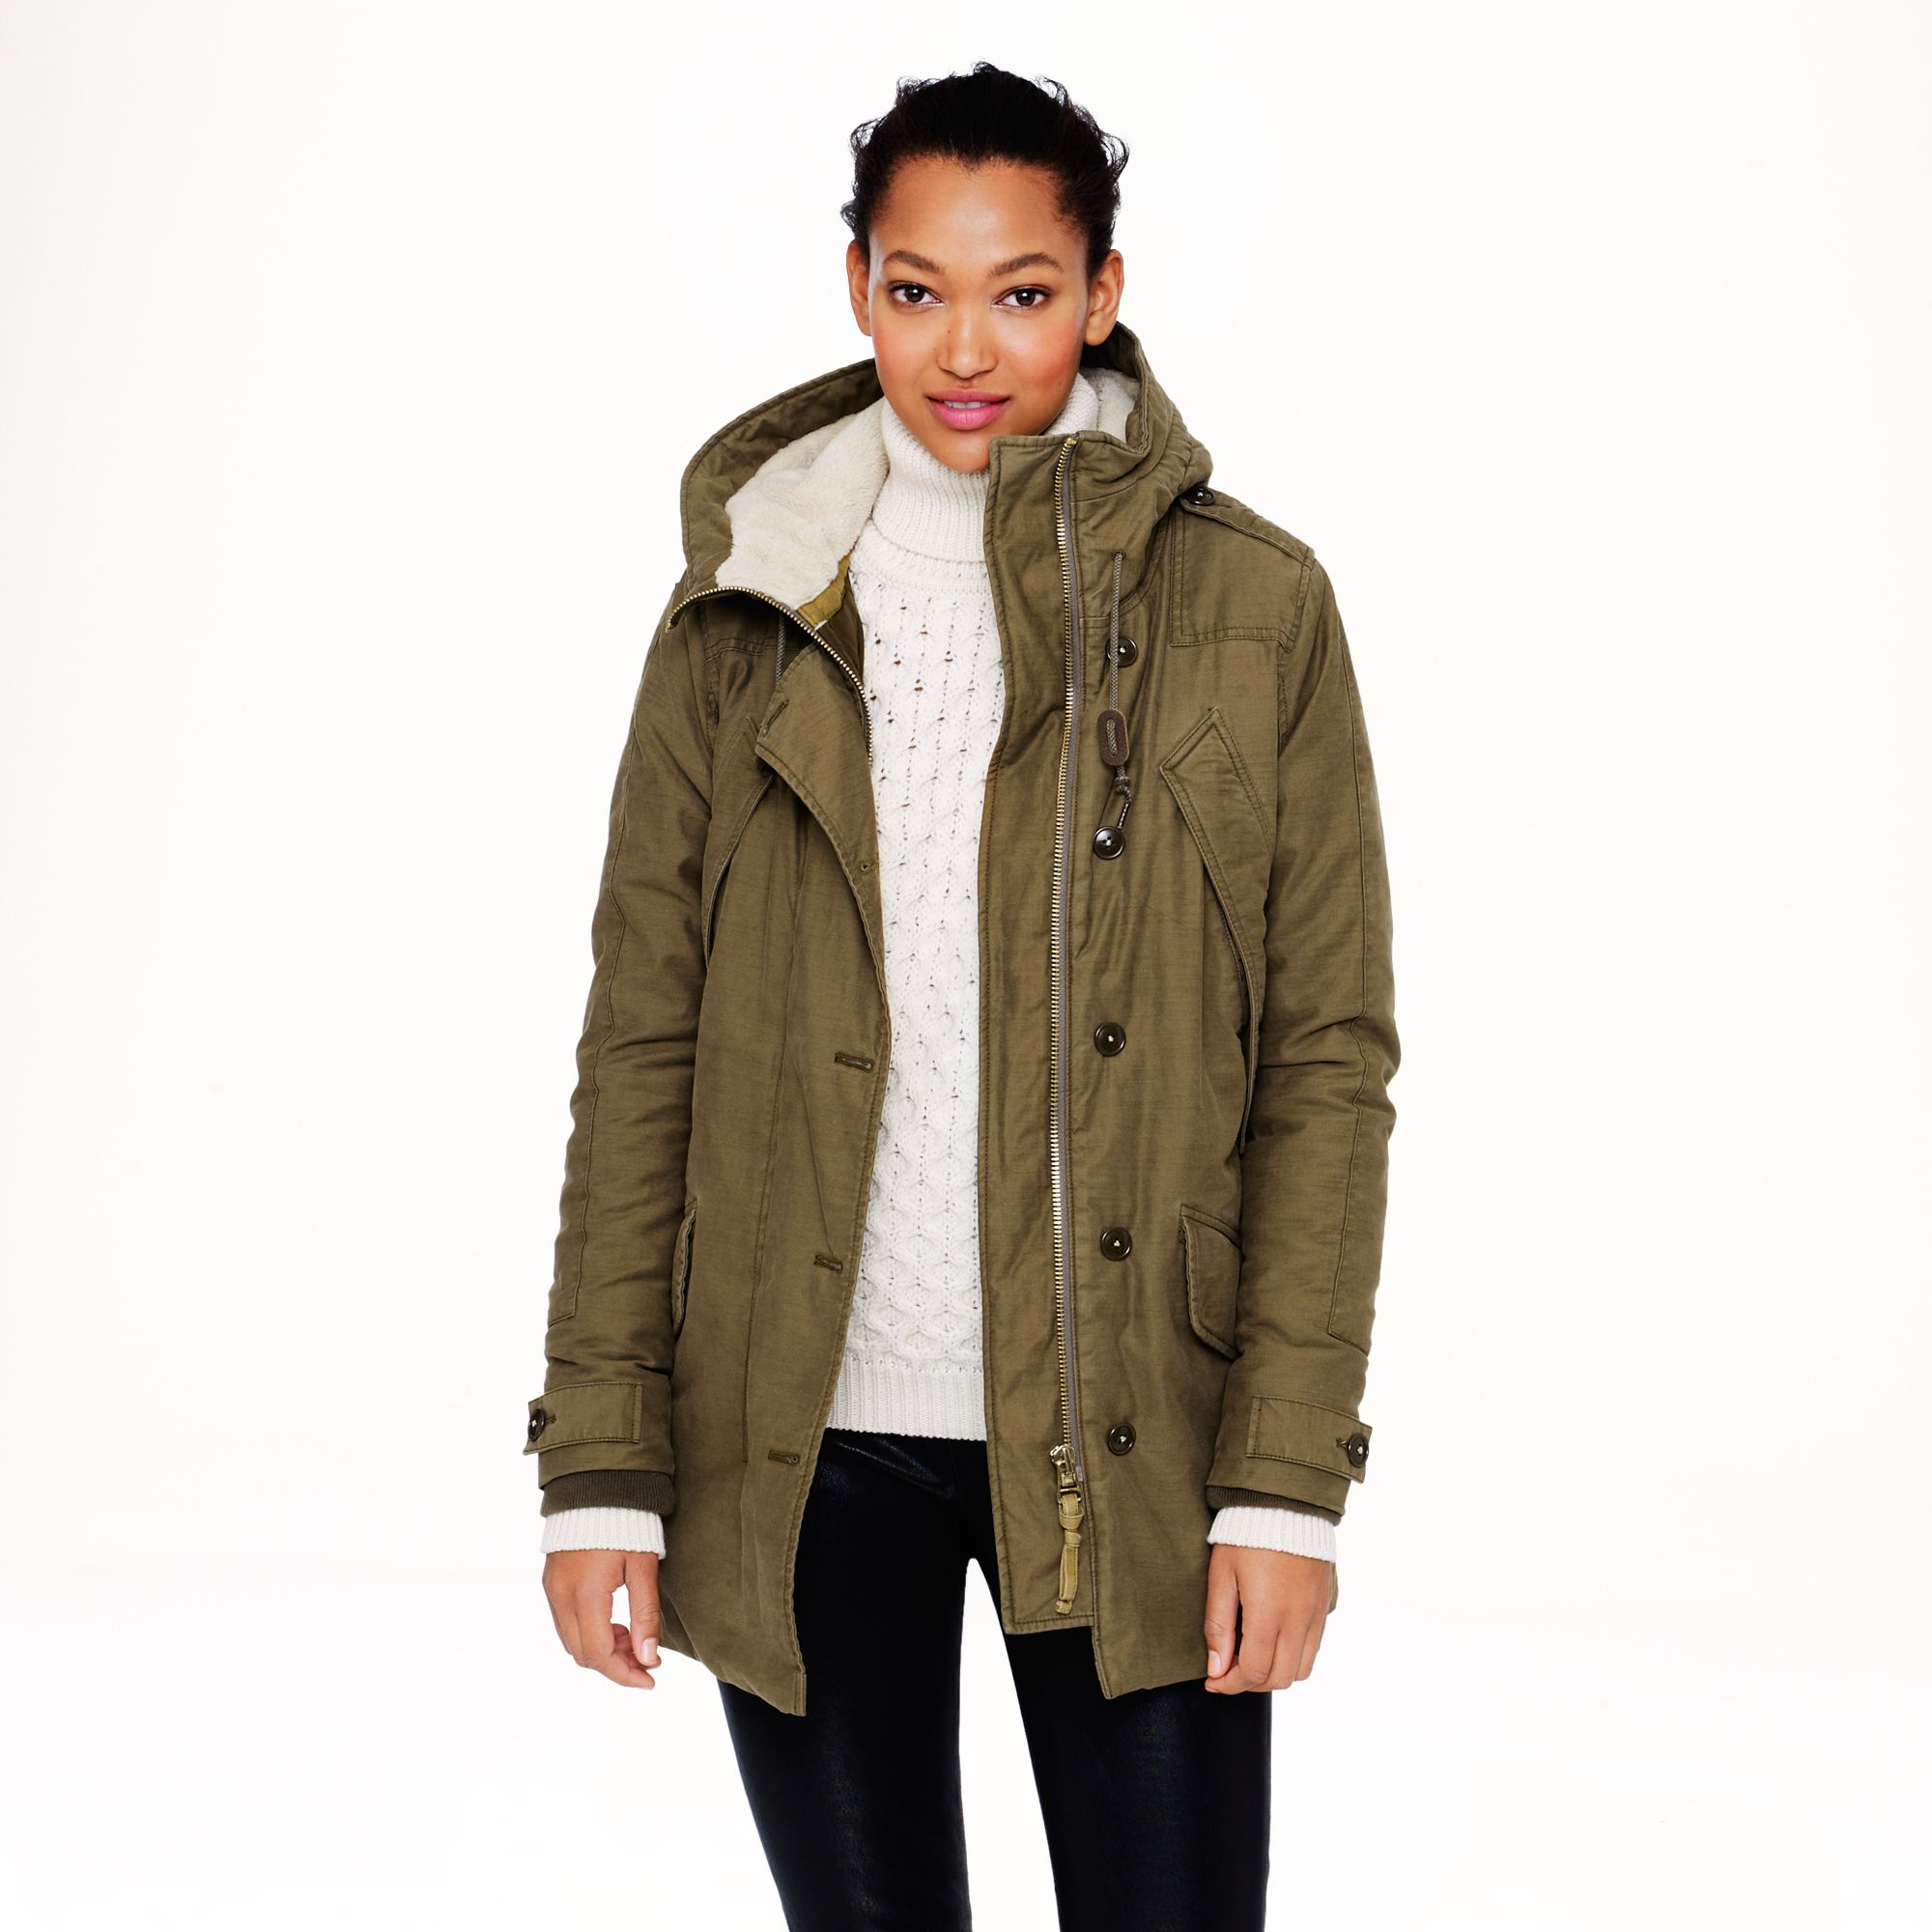 J.crew Sherpa Lined Parka Jacket in Natural | Lyst